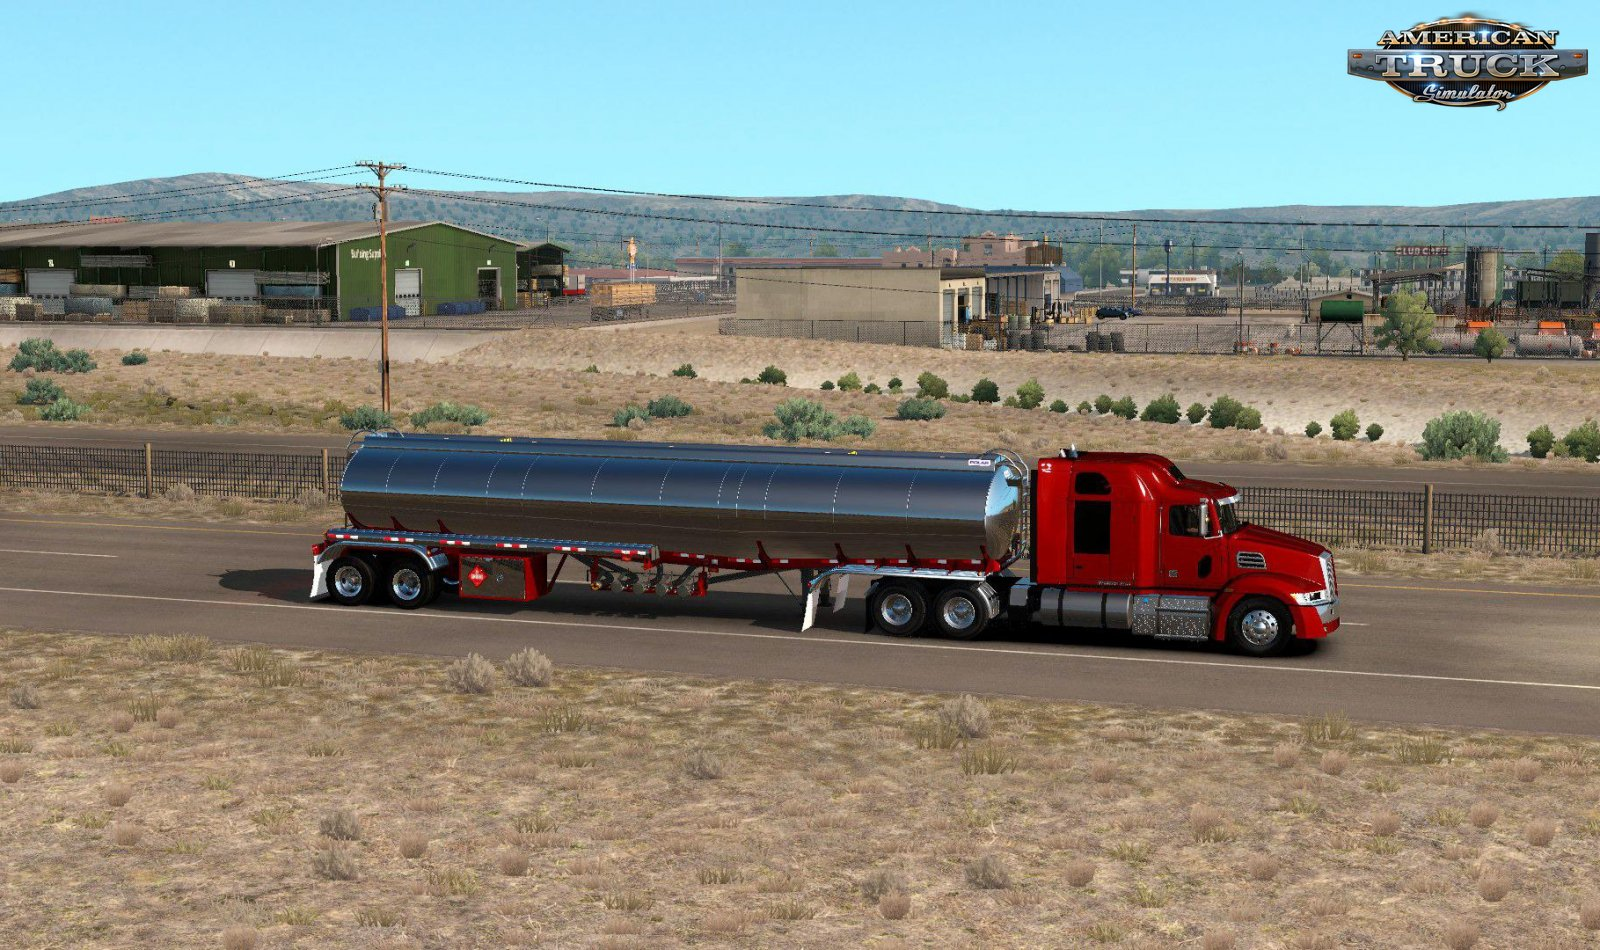 Trailer Polar Tanker Ownable v1.0 (1.35.x)